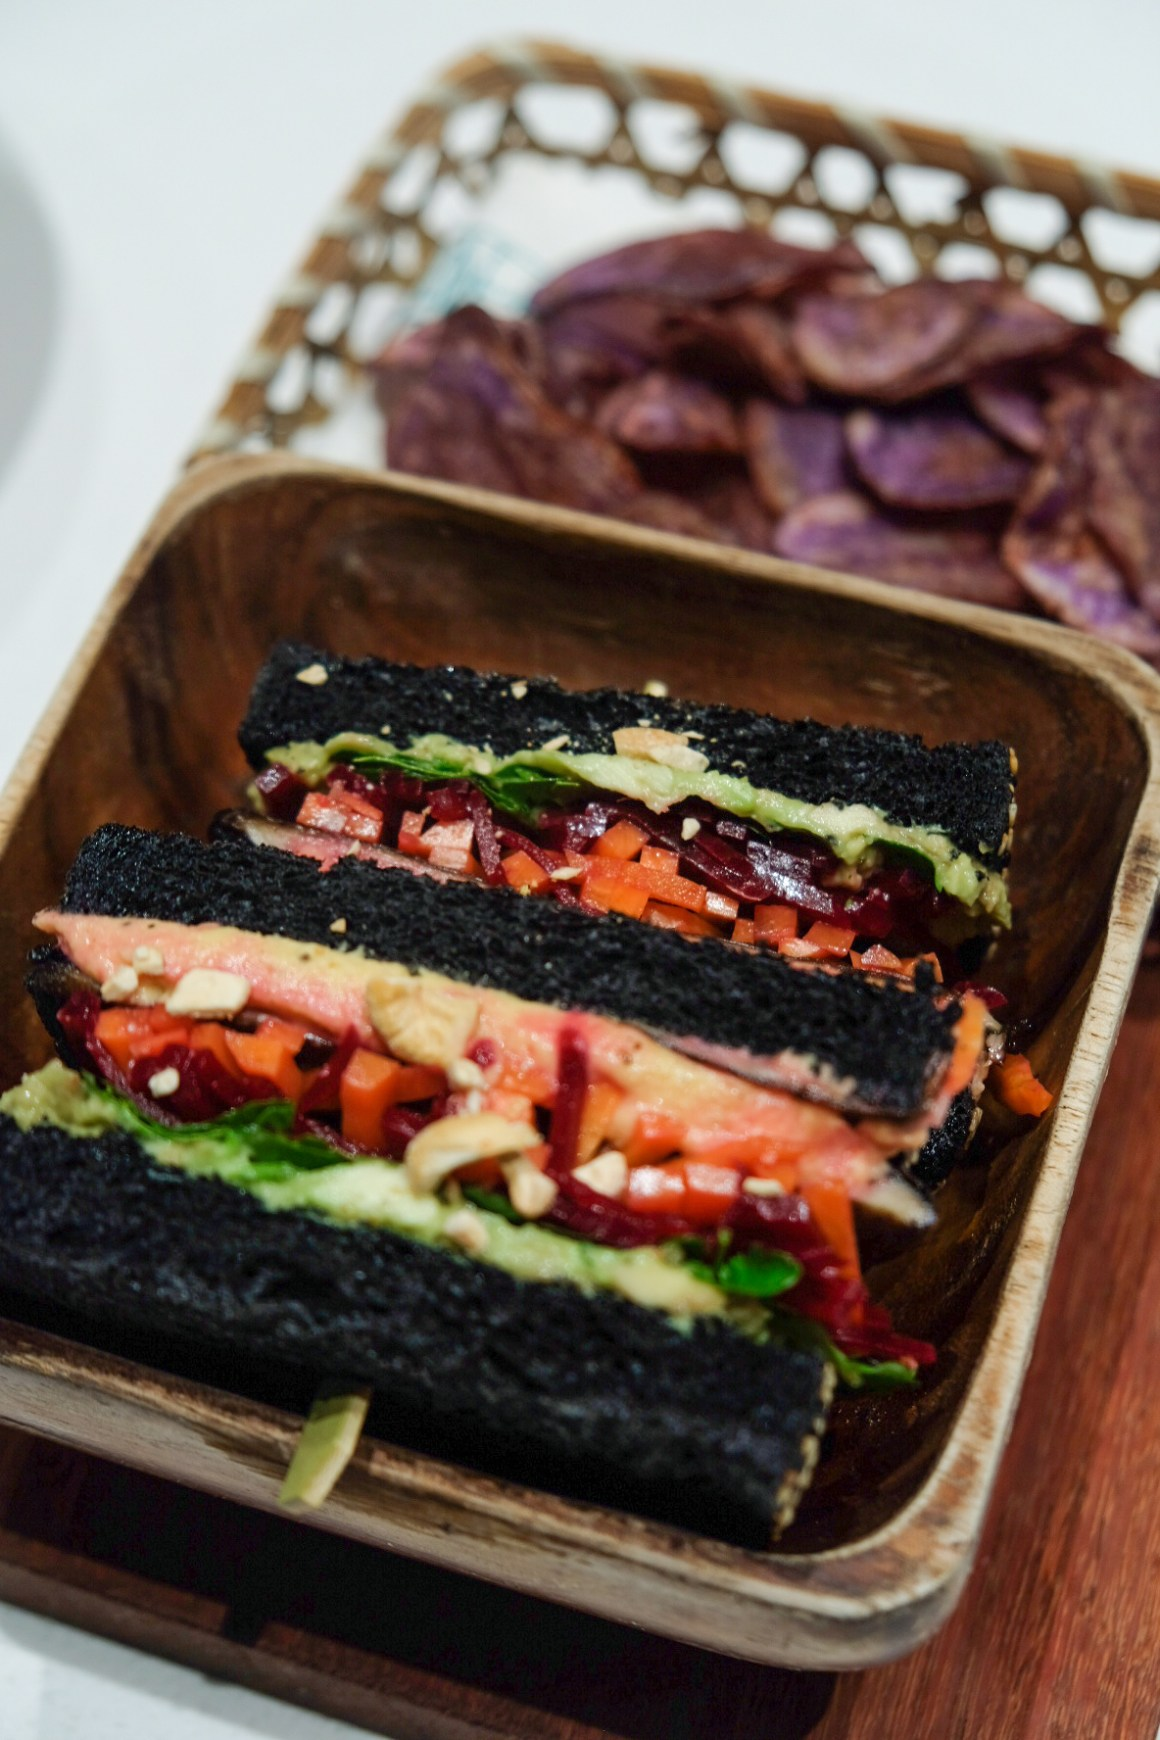 Tiong Bahru Bakery Diner New Menu By Chef Paul Albert - Portobello, Avocado & Hummus Black Sandwich ($19)